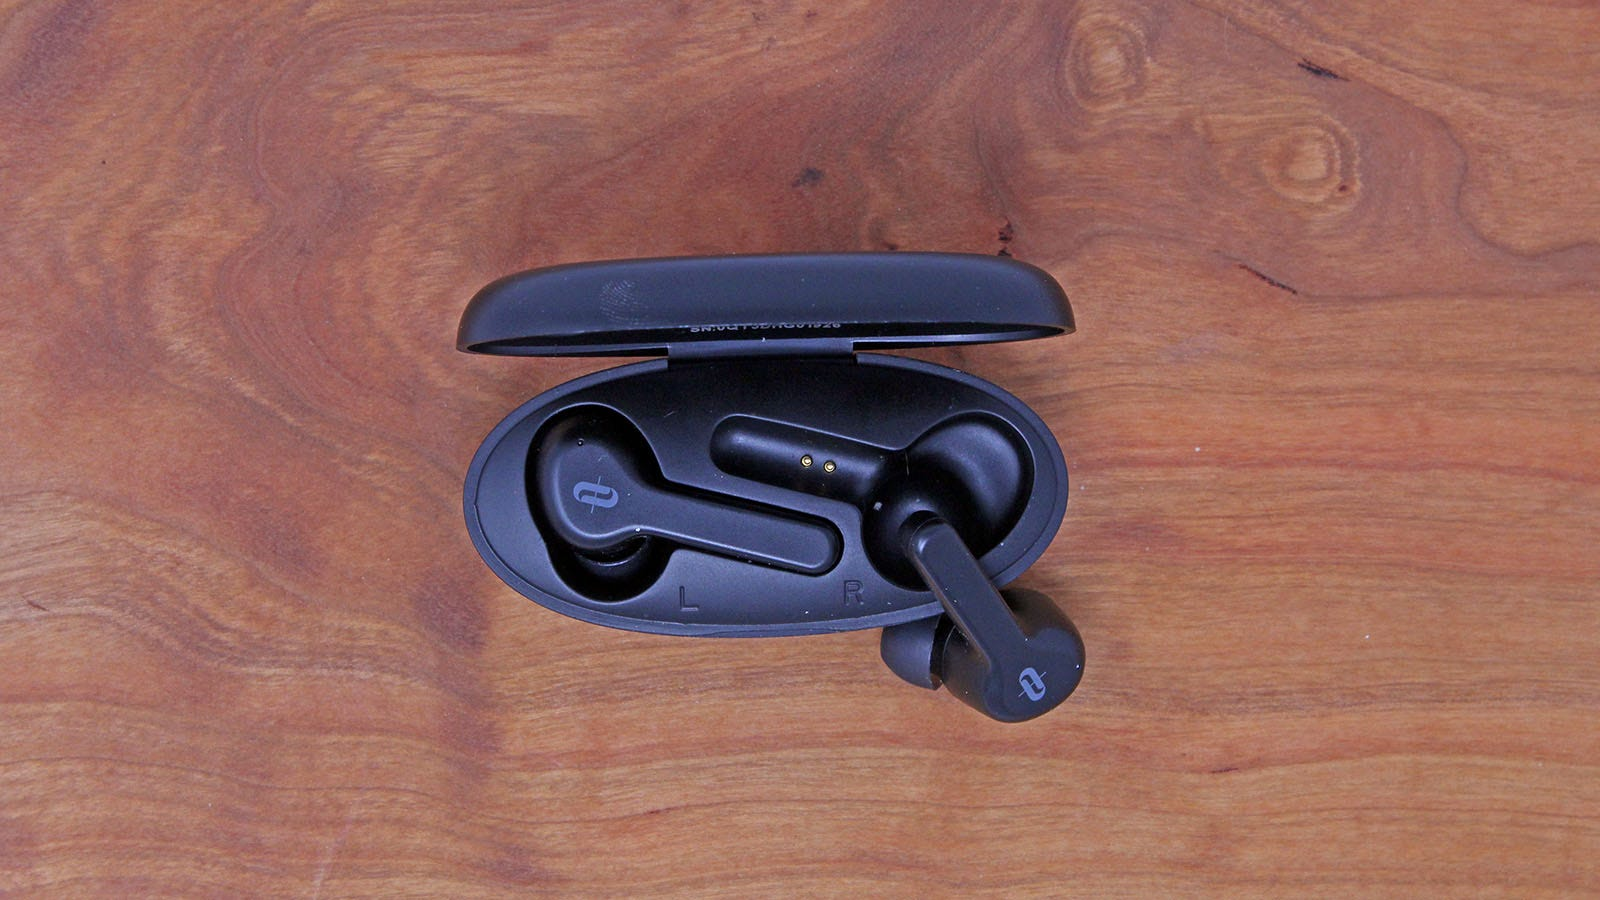 The two TaoTronics earbuds tucked into their case.